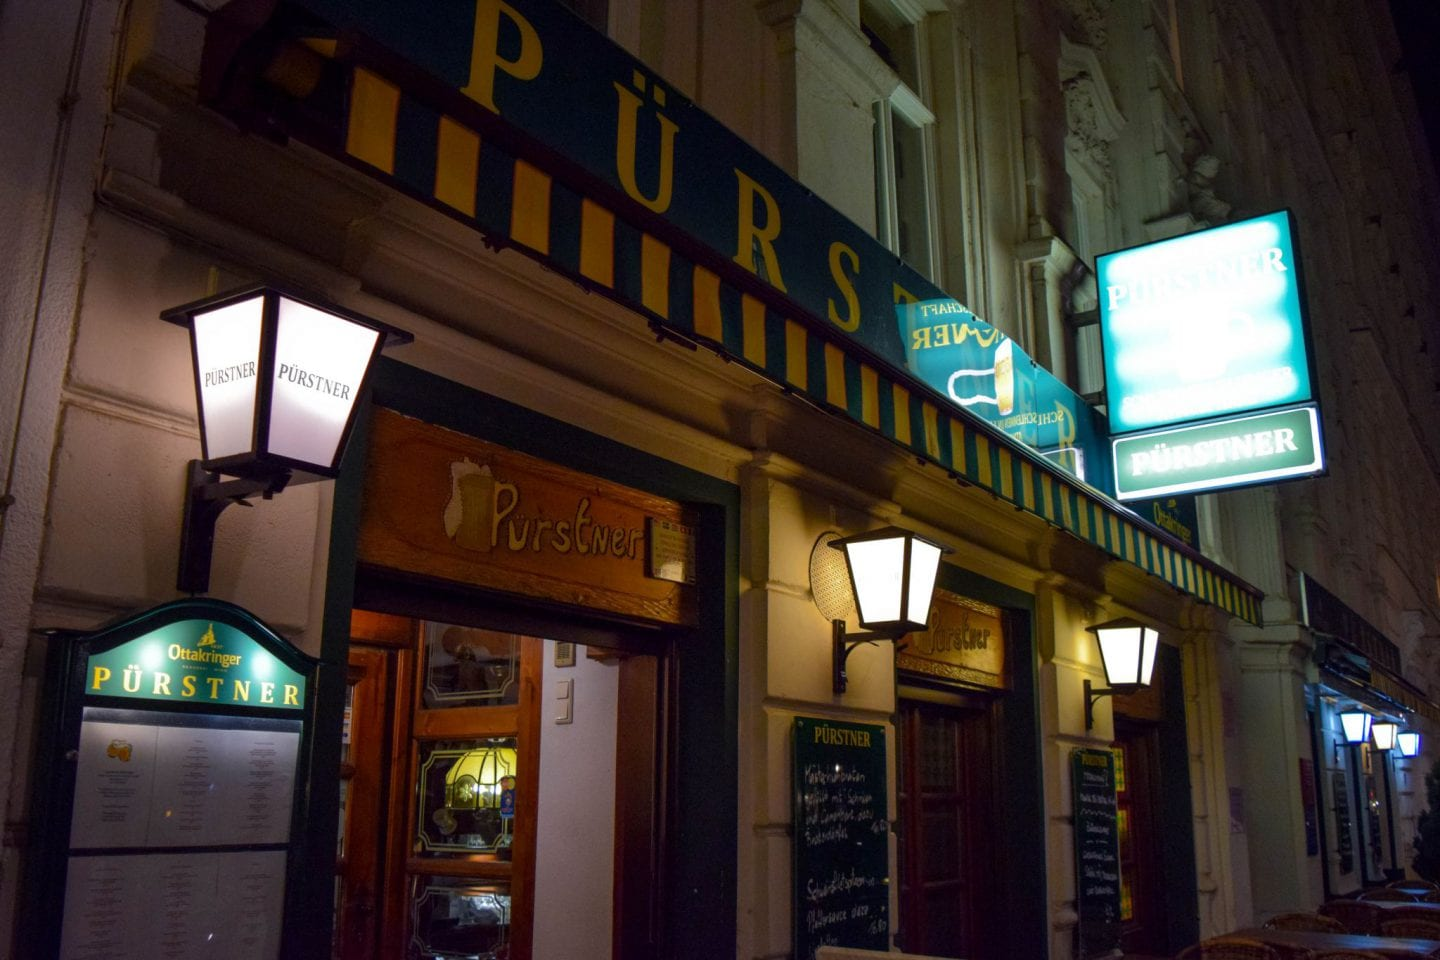 Where to eat in Vienna as a vegetarian: Purstner